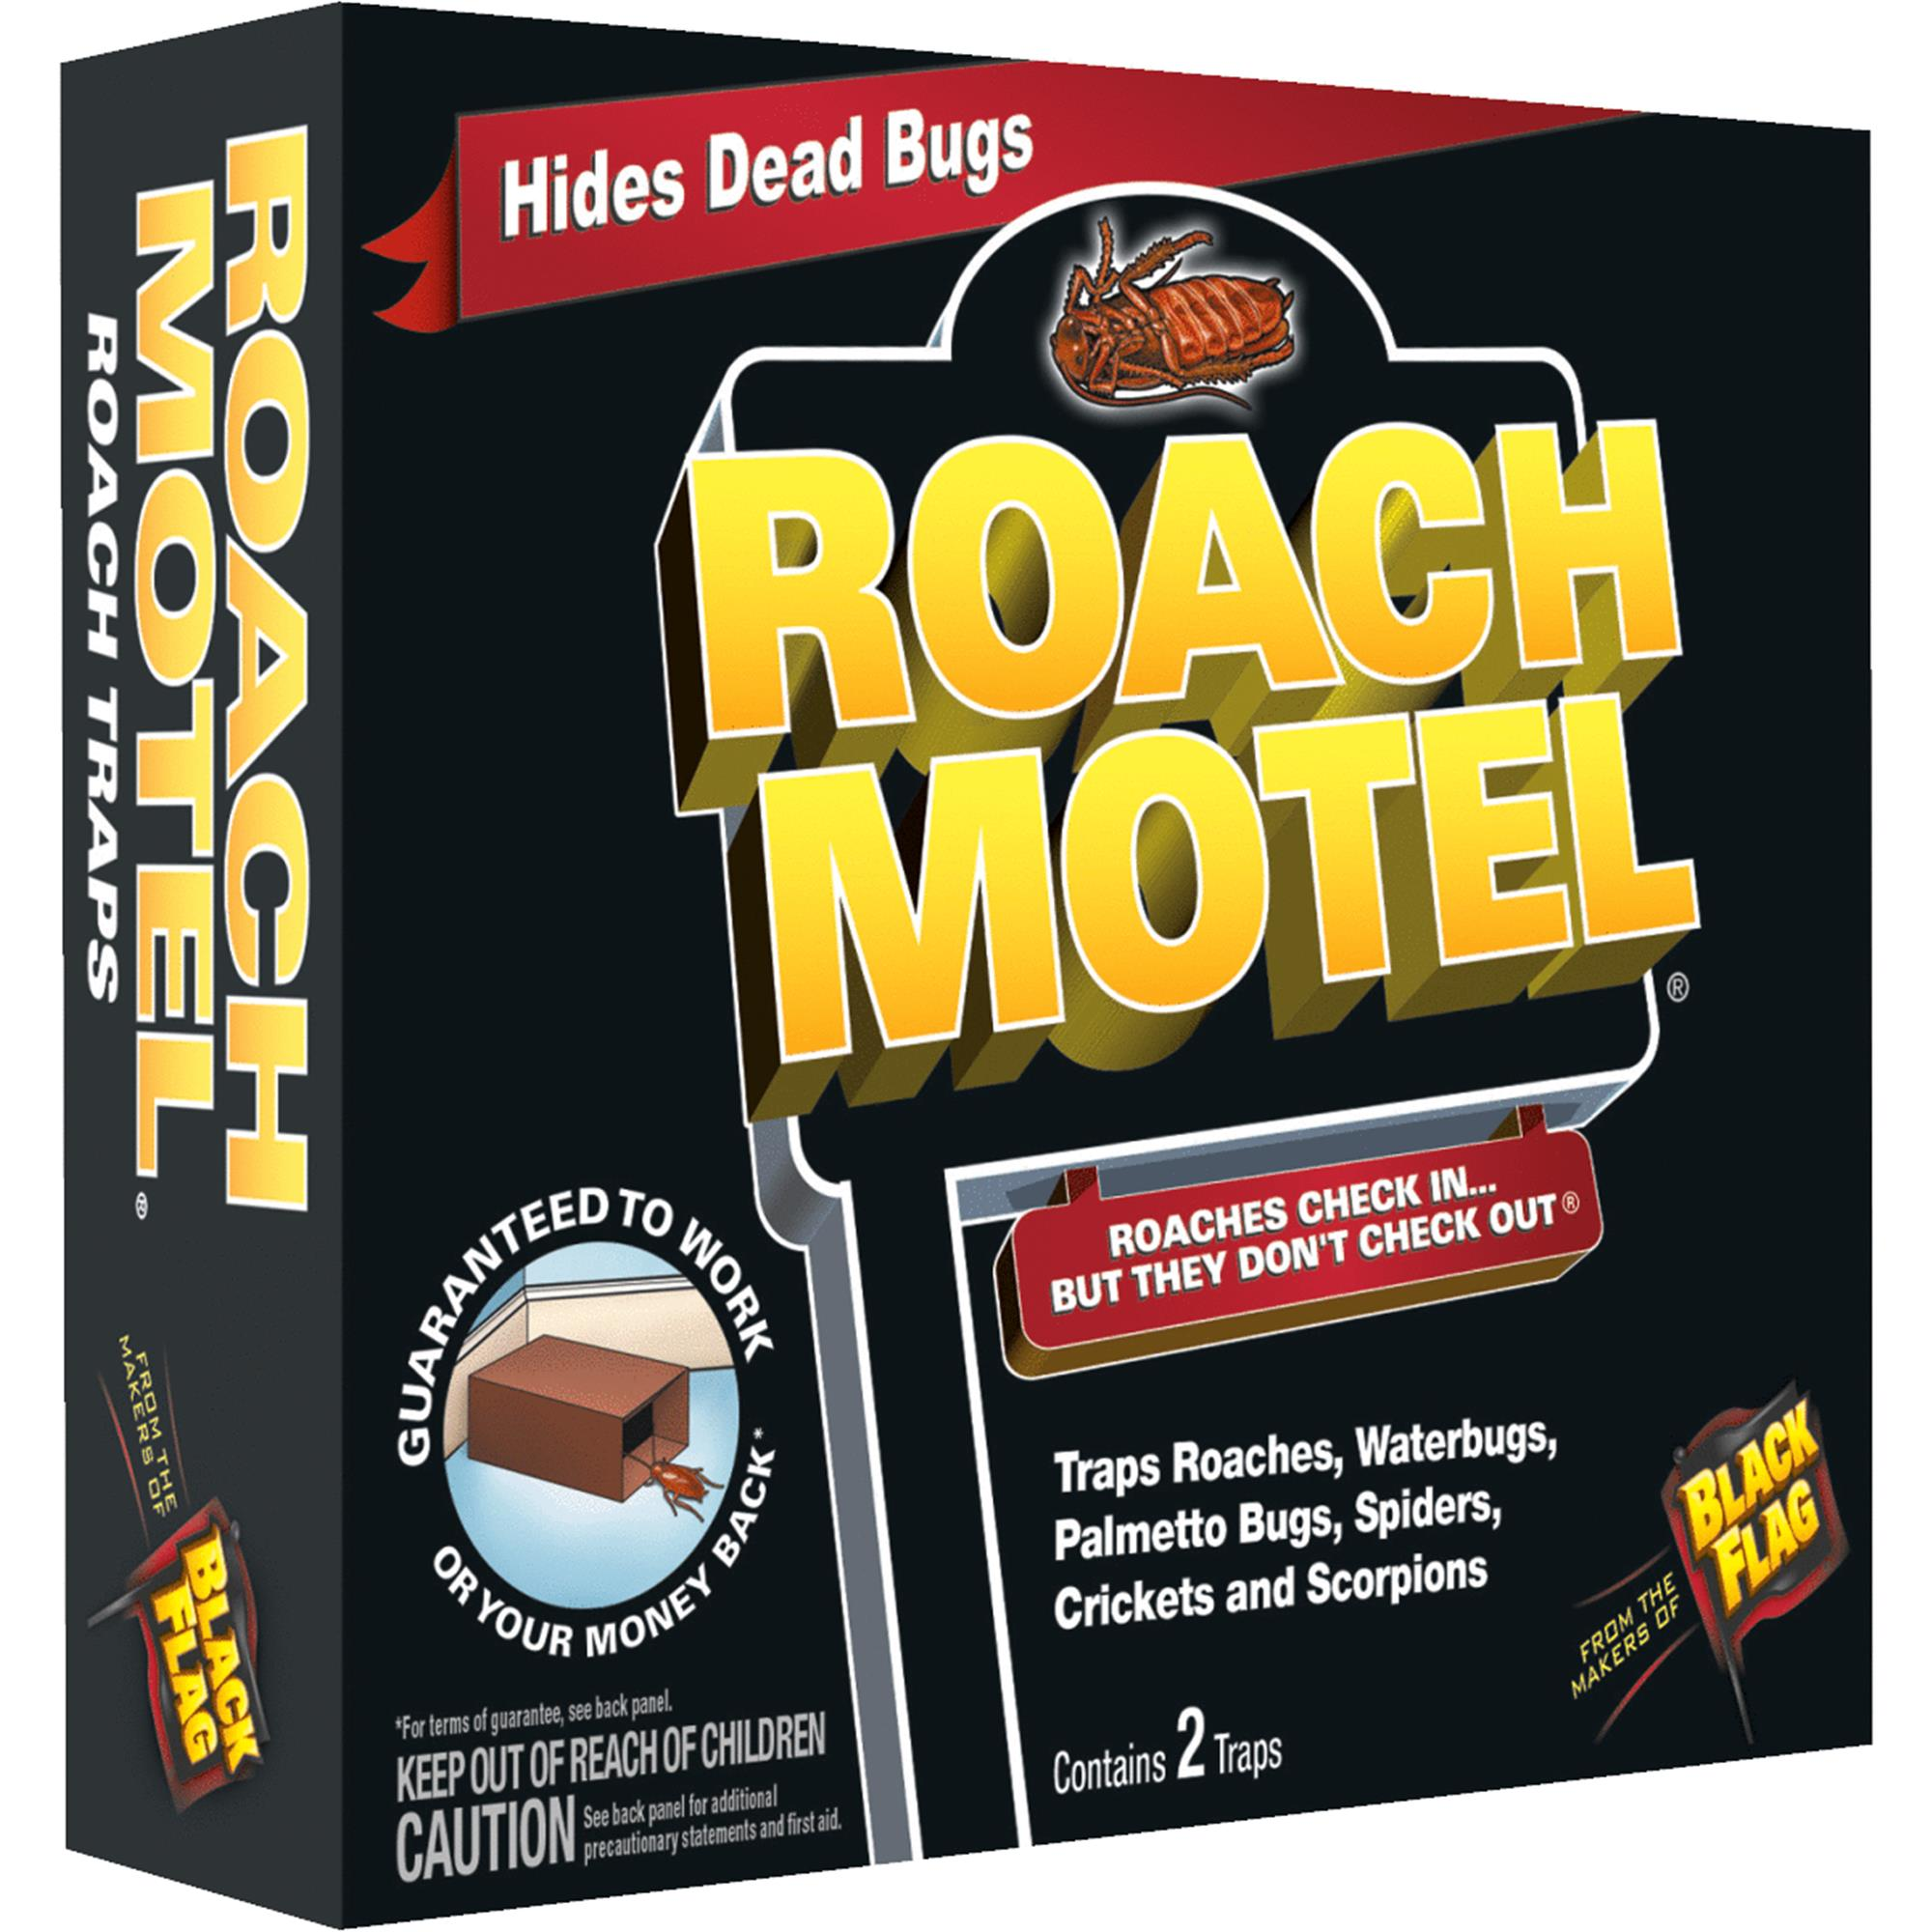 Black Flag Roach Motel Roach Bait & Trap